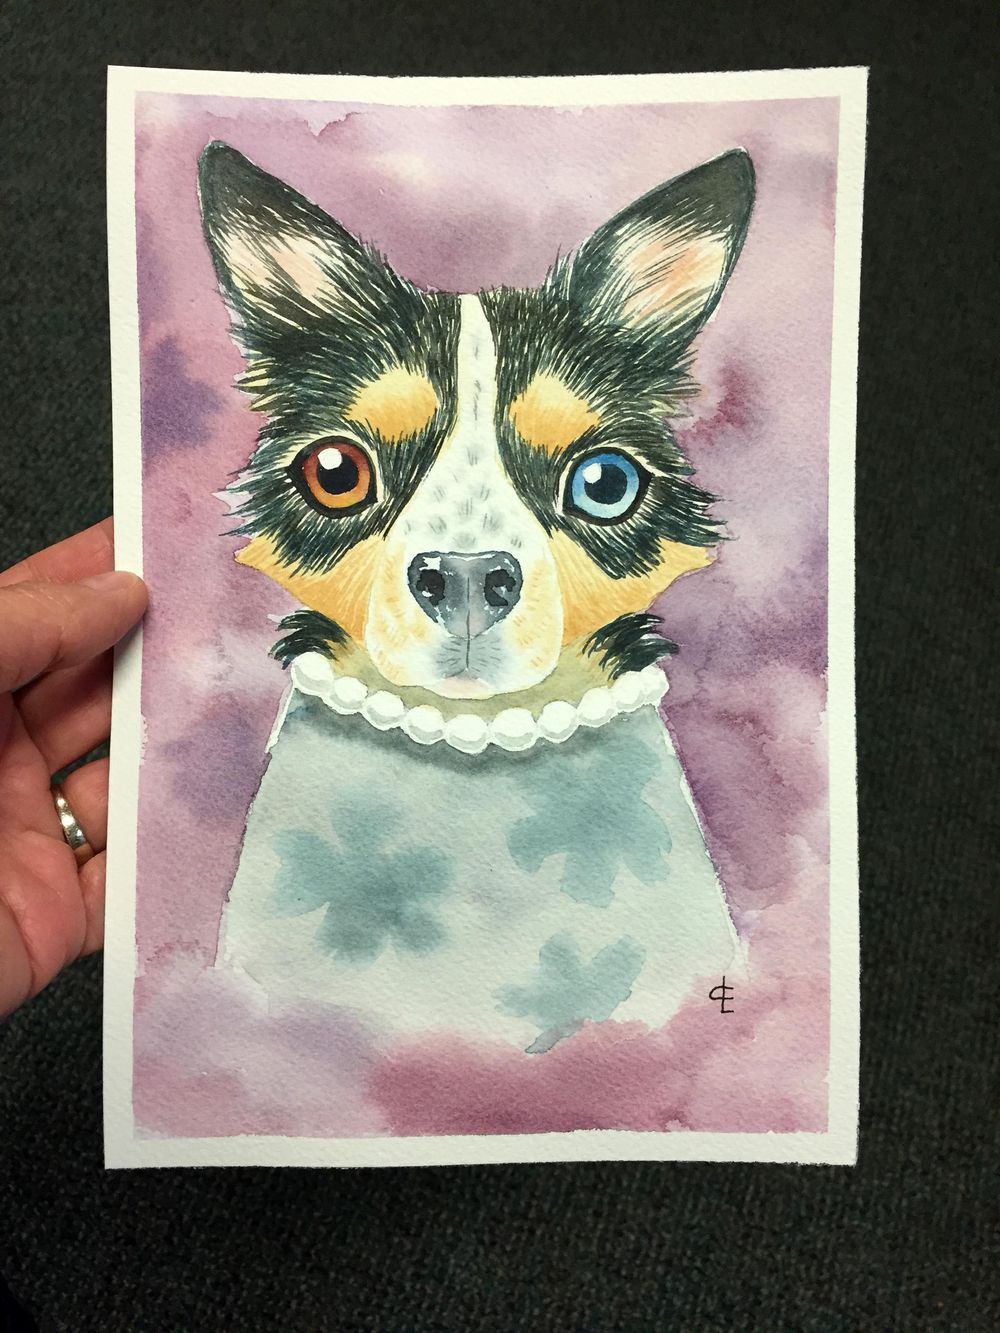 My Dog: Boo - image 3 - student project